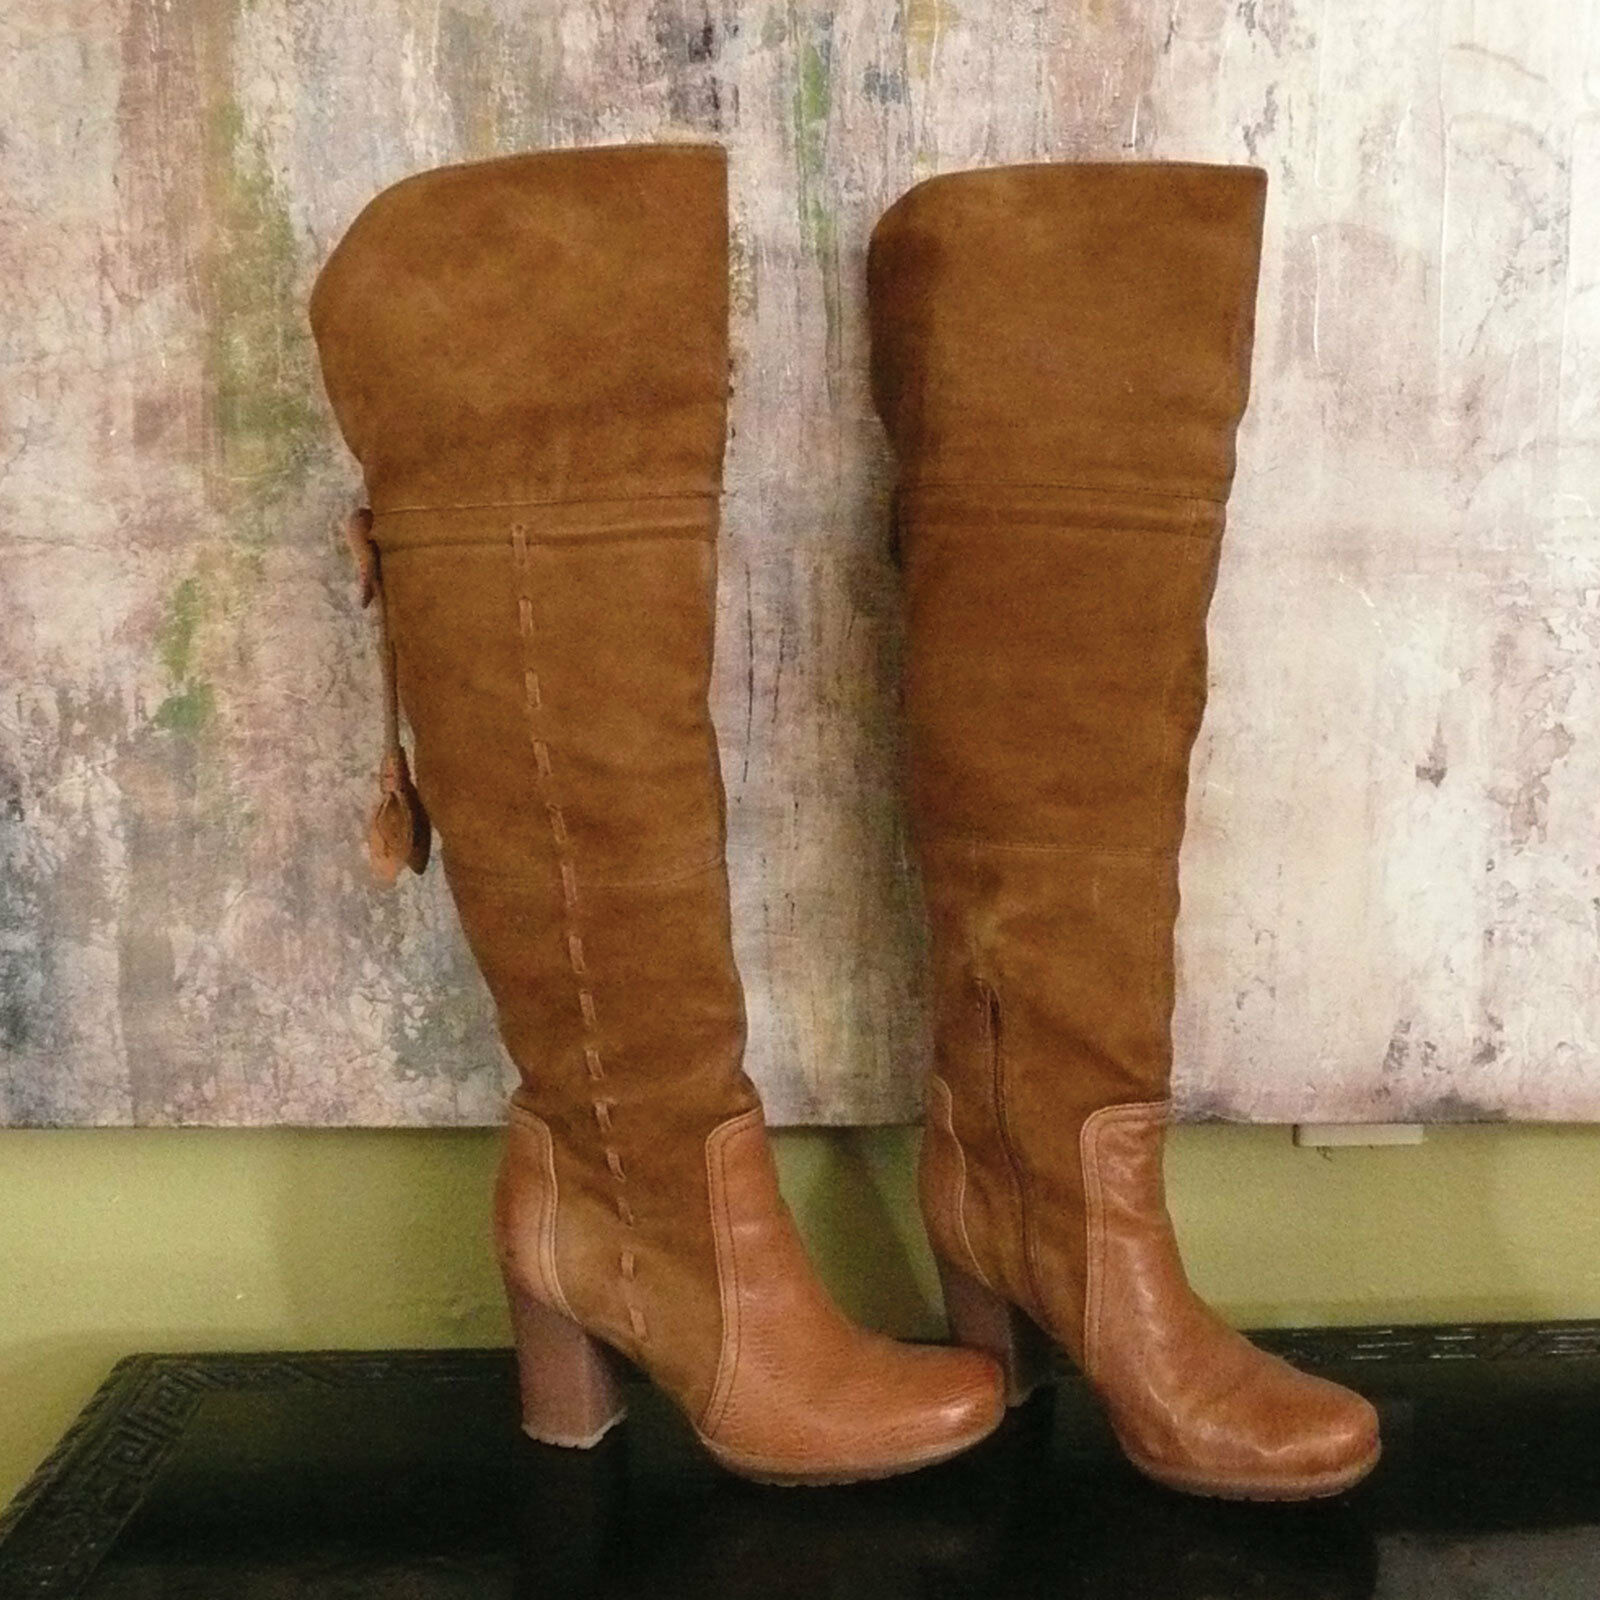 Naya Narubi Boots Suede and Leather Mix  284 Size 8